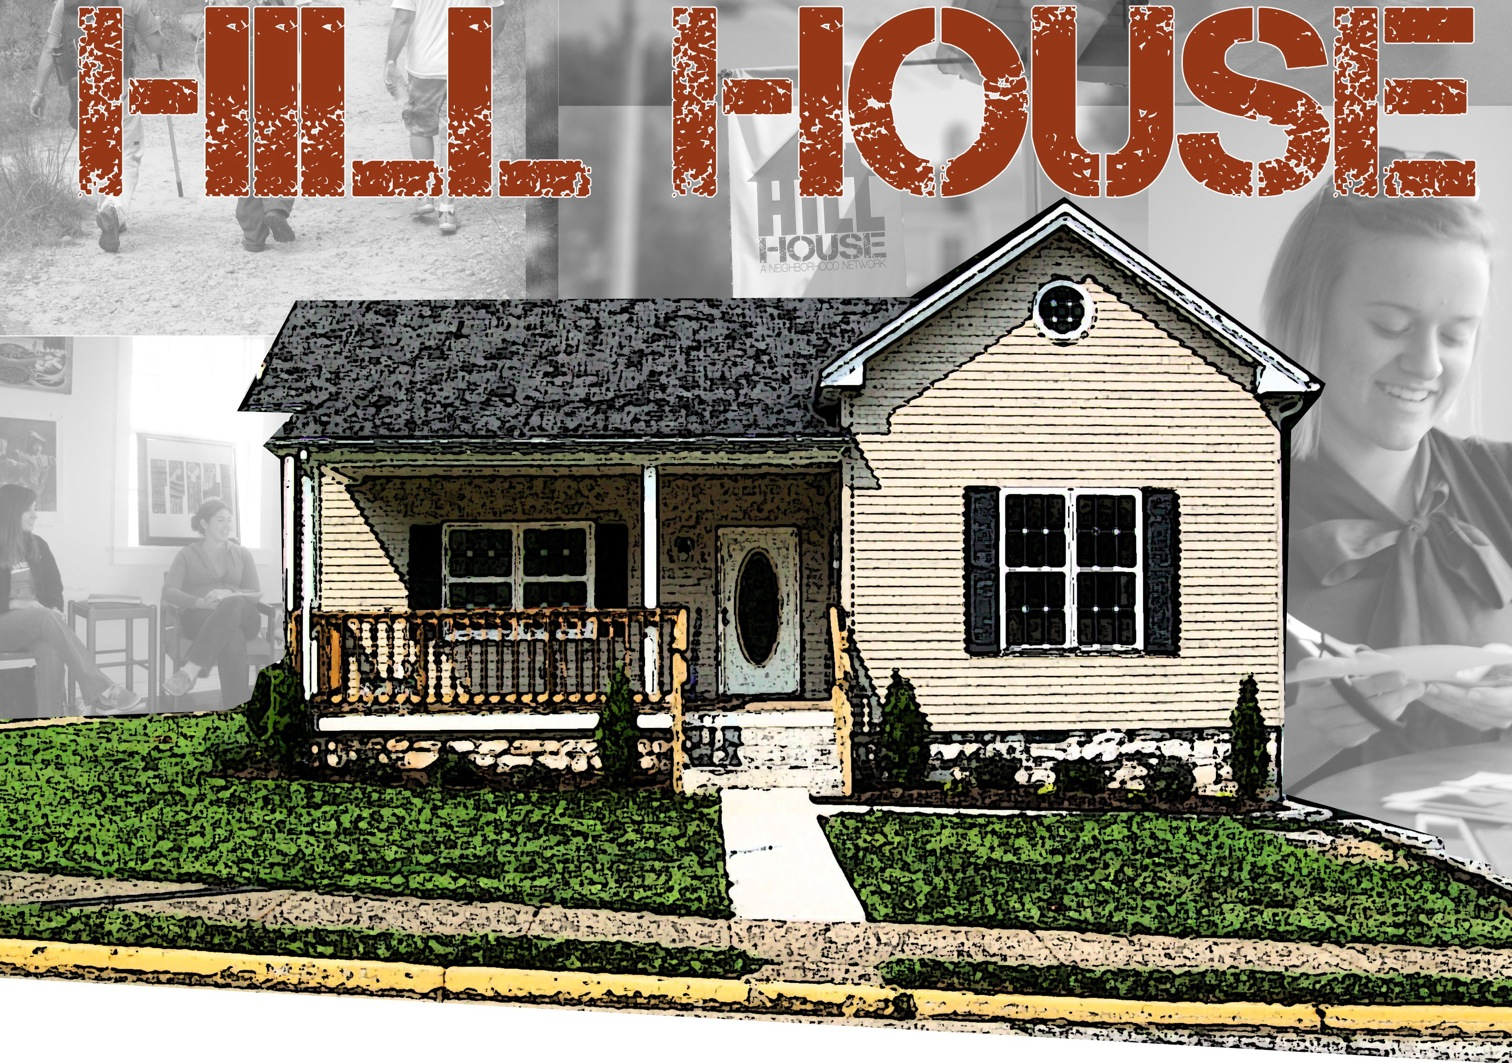 Western kentucky university hill house students - House on the hill 2012 ...